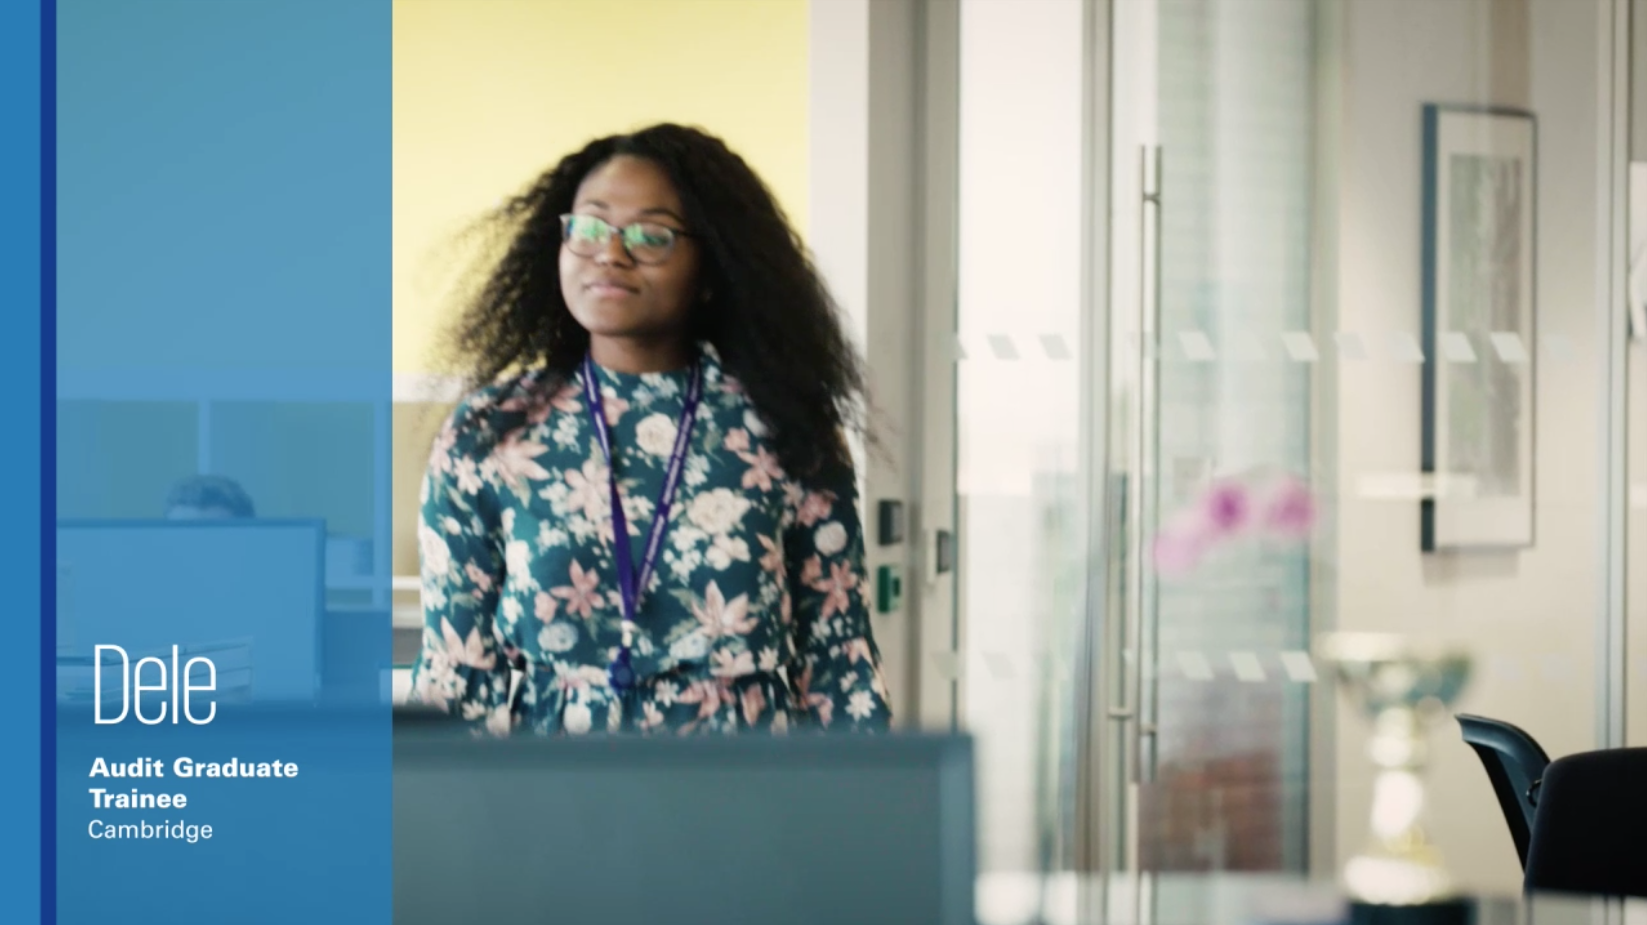 How to produce corporate videos that ACTUALLY engage people